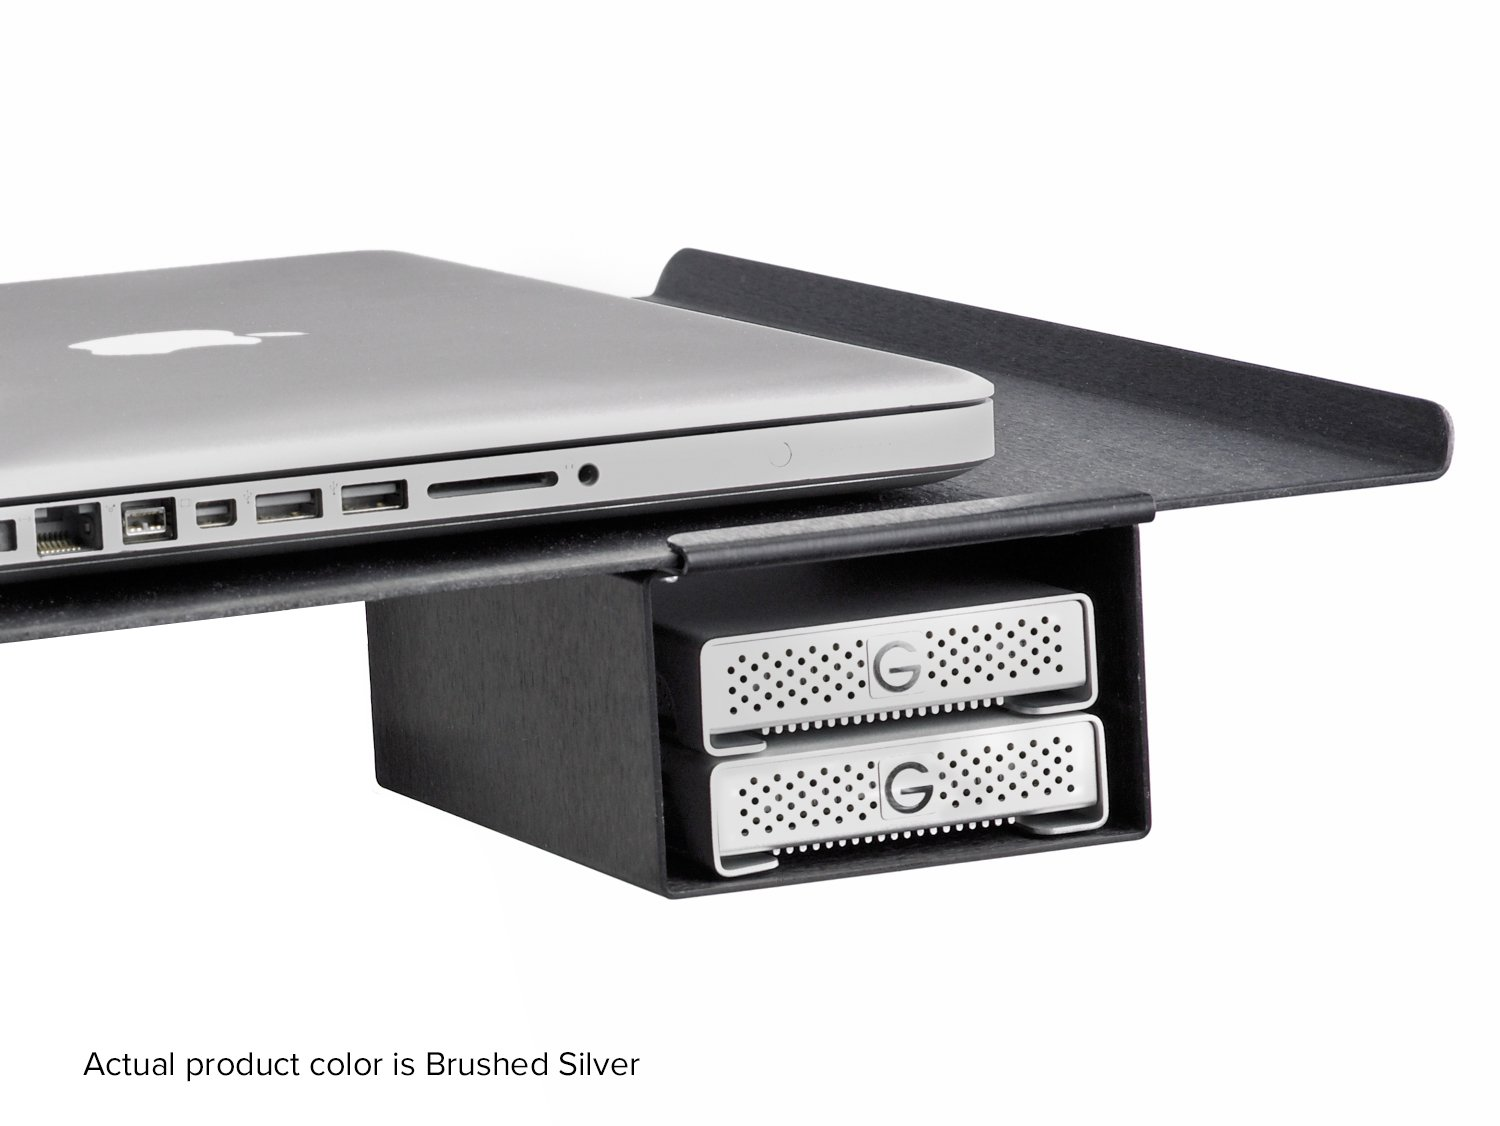 Tether Tools Aero XDC Duo External Drive Compartment - Brushed Silver